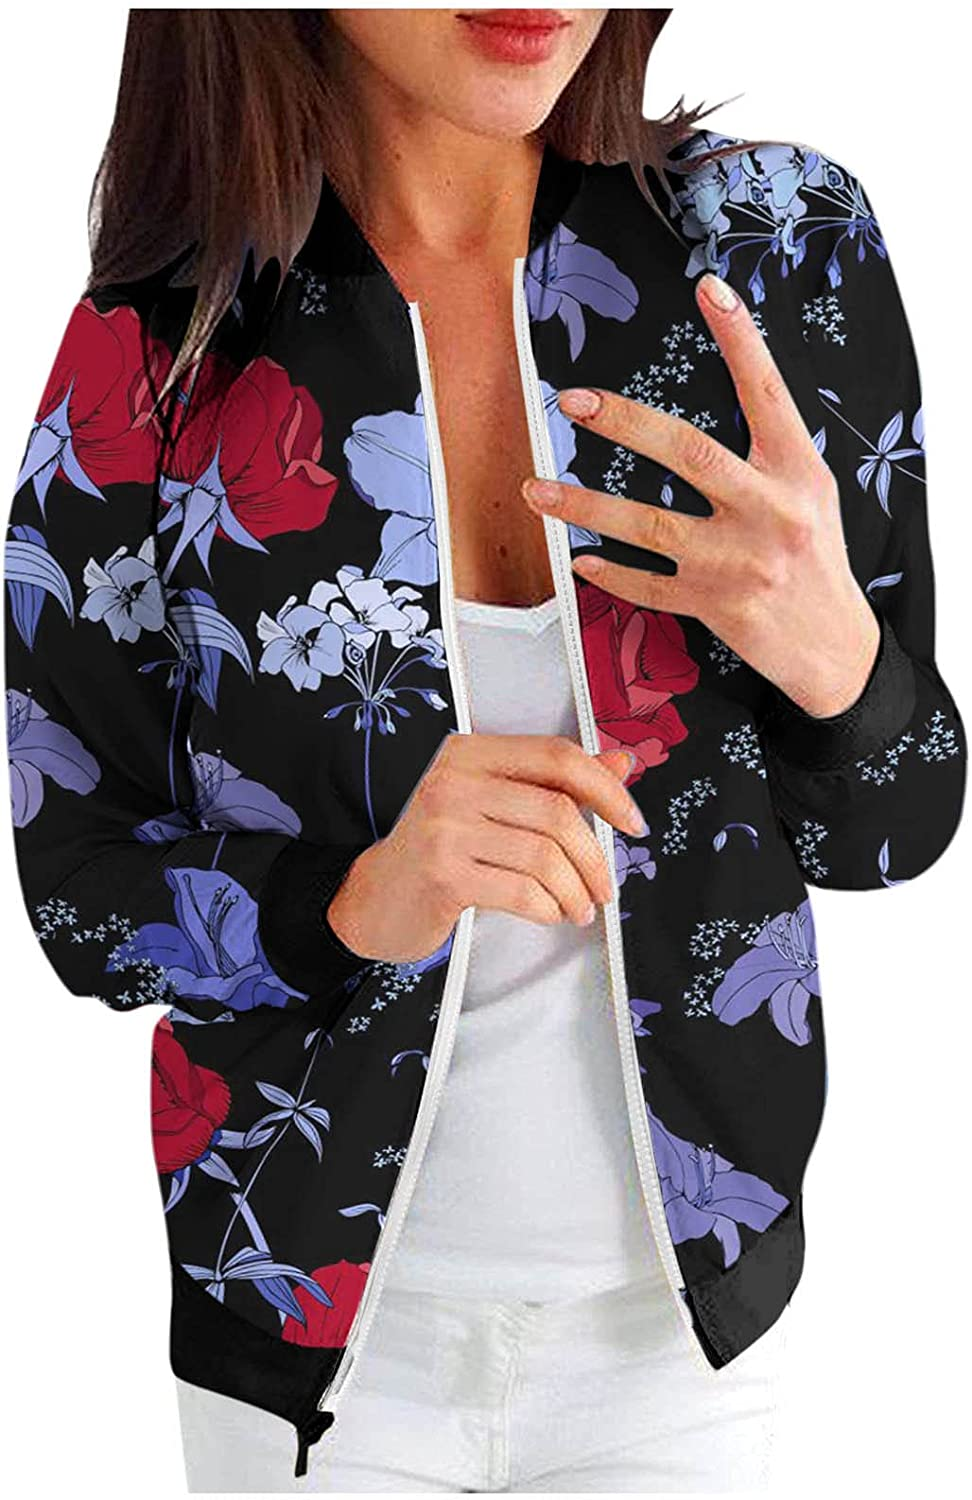 Misaky Women's Jackets Lightweight Zip Up Retro Floral Printing Jacket Casual Tops Coat Outwear